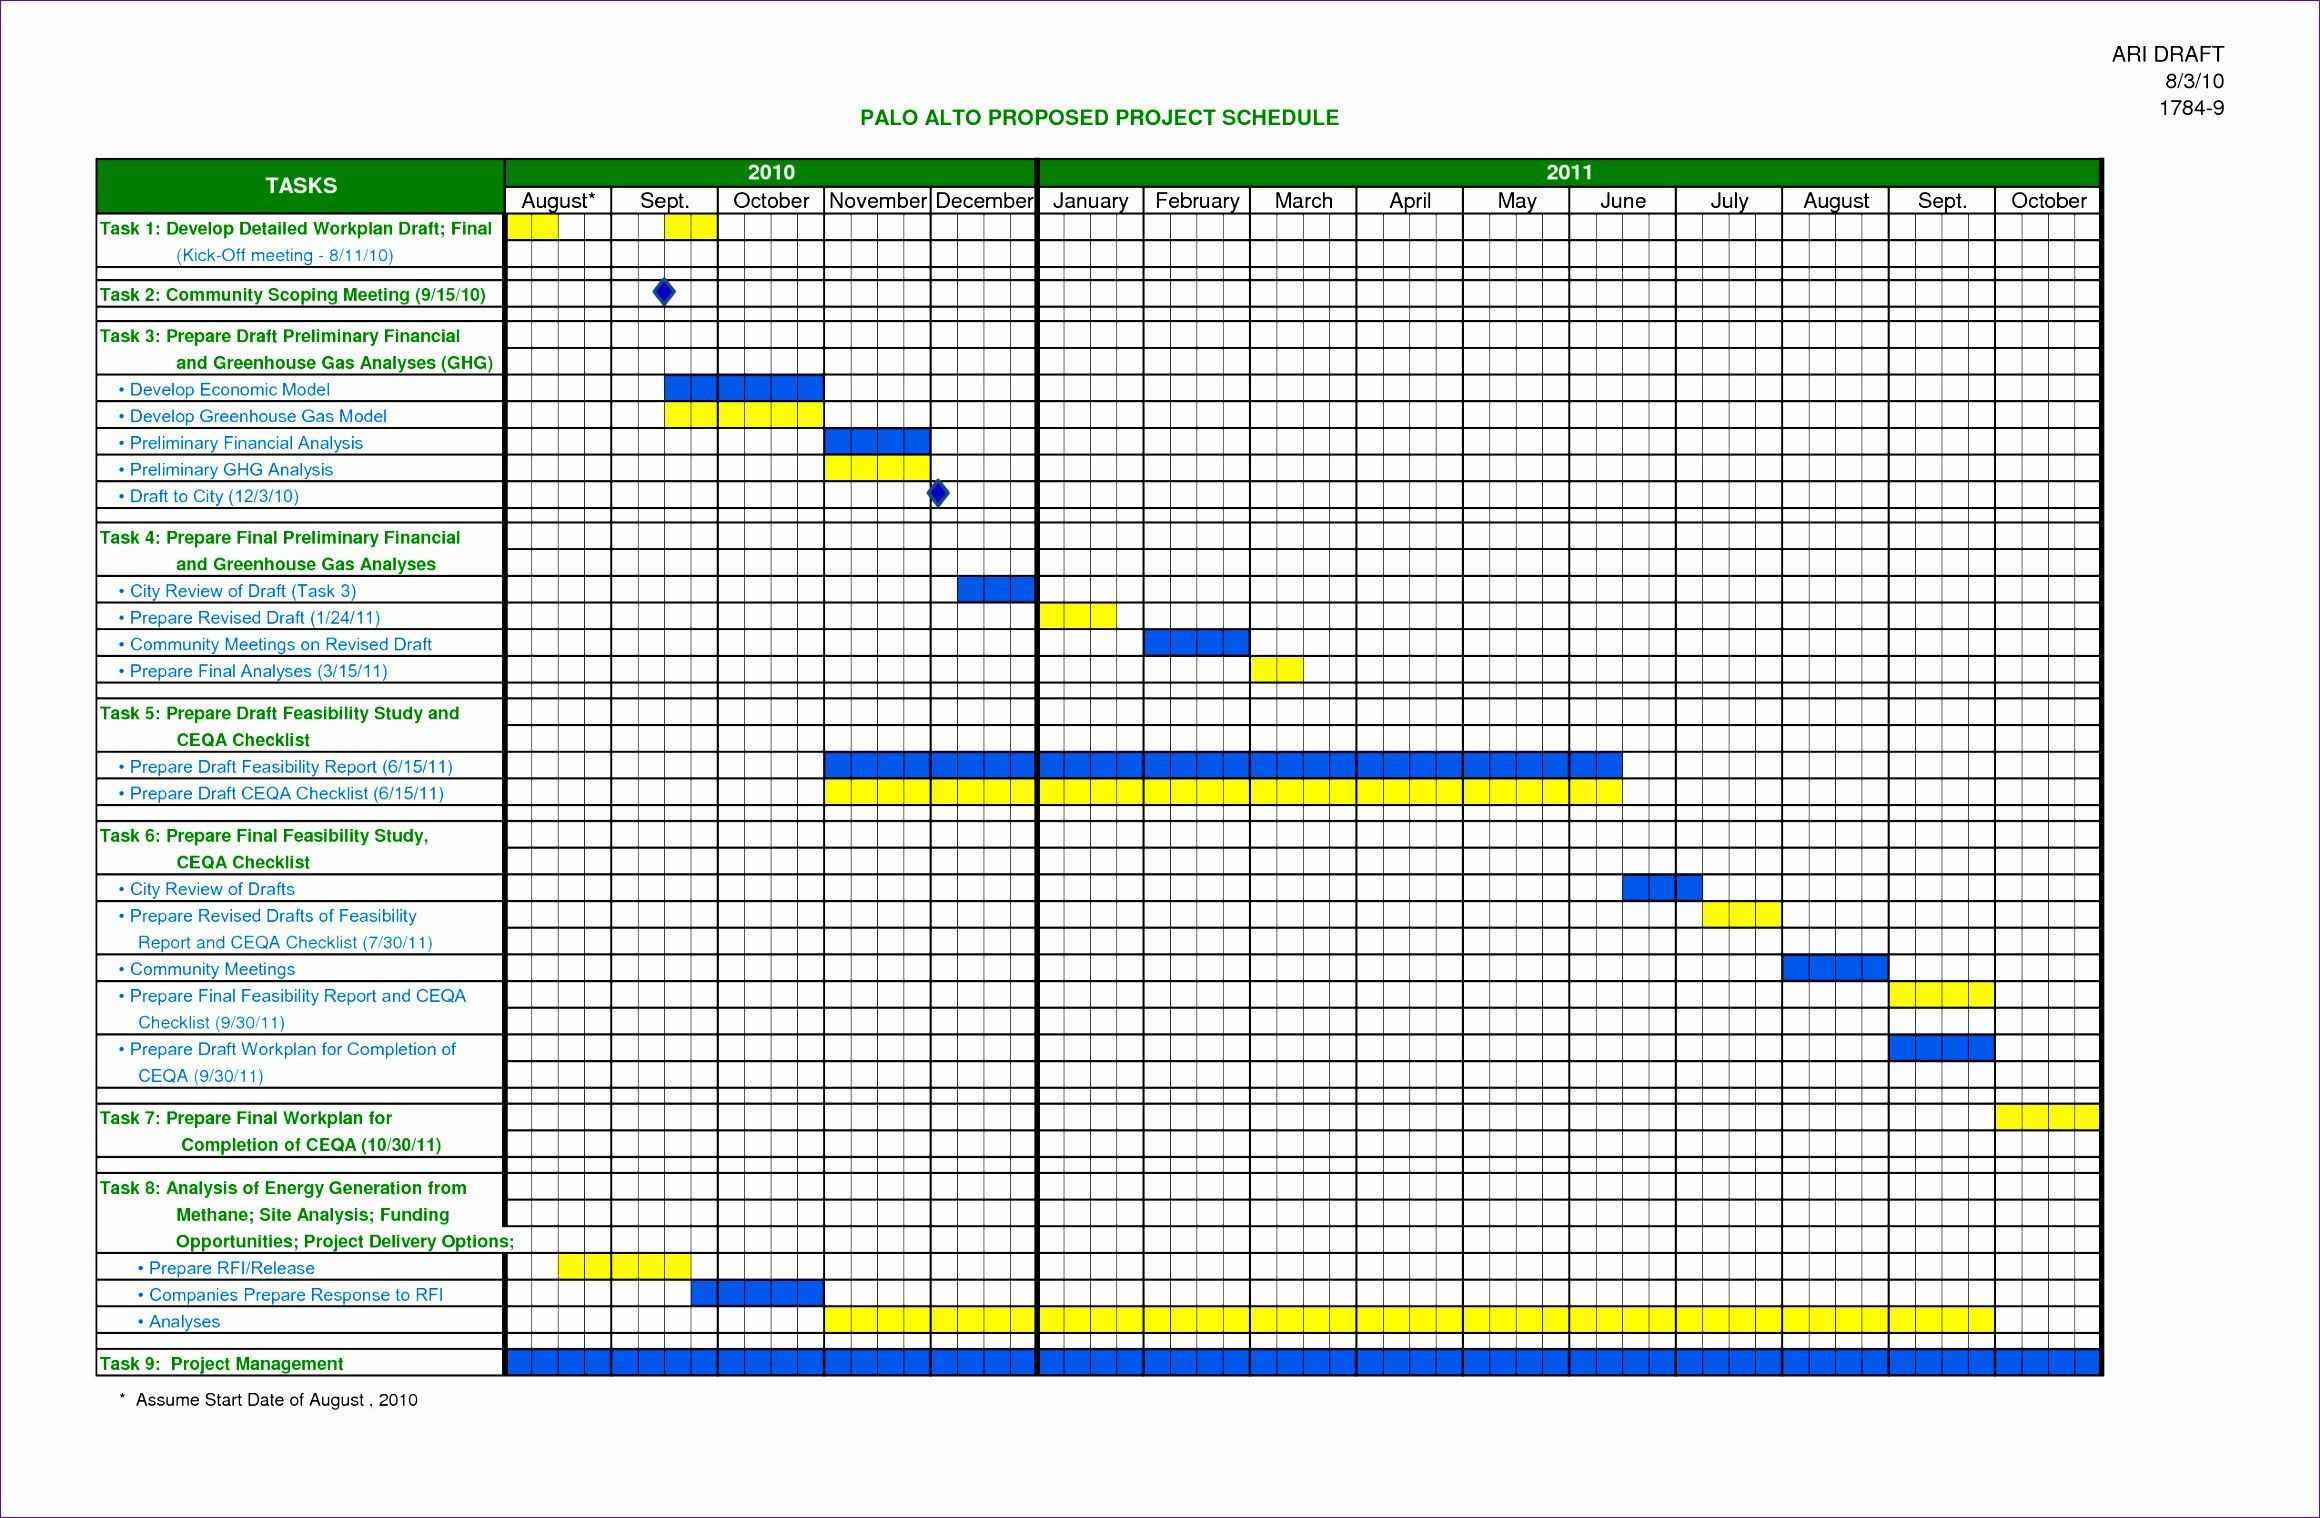 Workforce Plan Template Excel Lovely Workforce Planning Template Excel Tfzpz Best 12 In 2020 Excel Templates Schedule Template Project Timeline Template